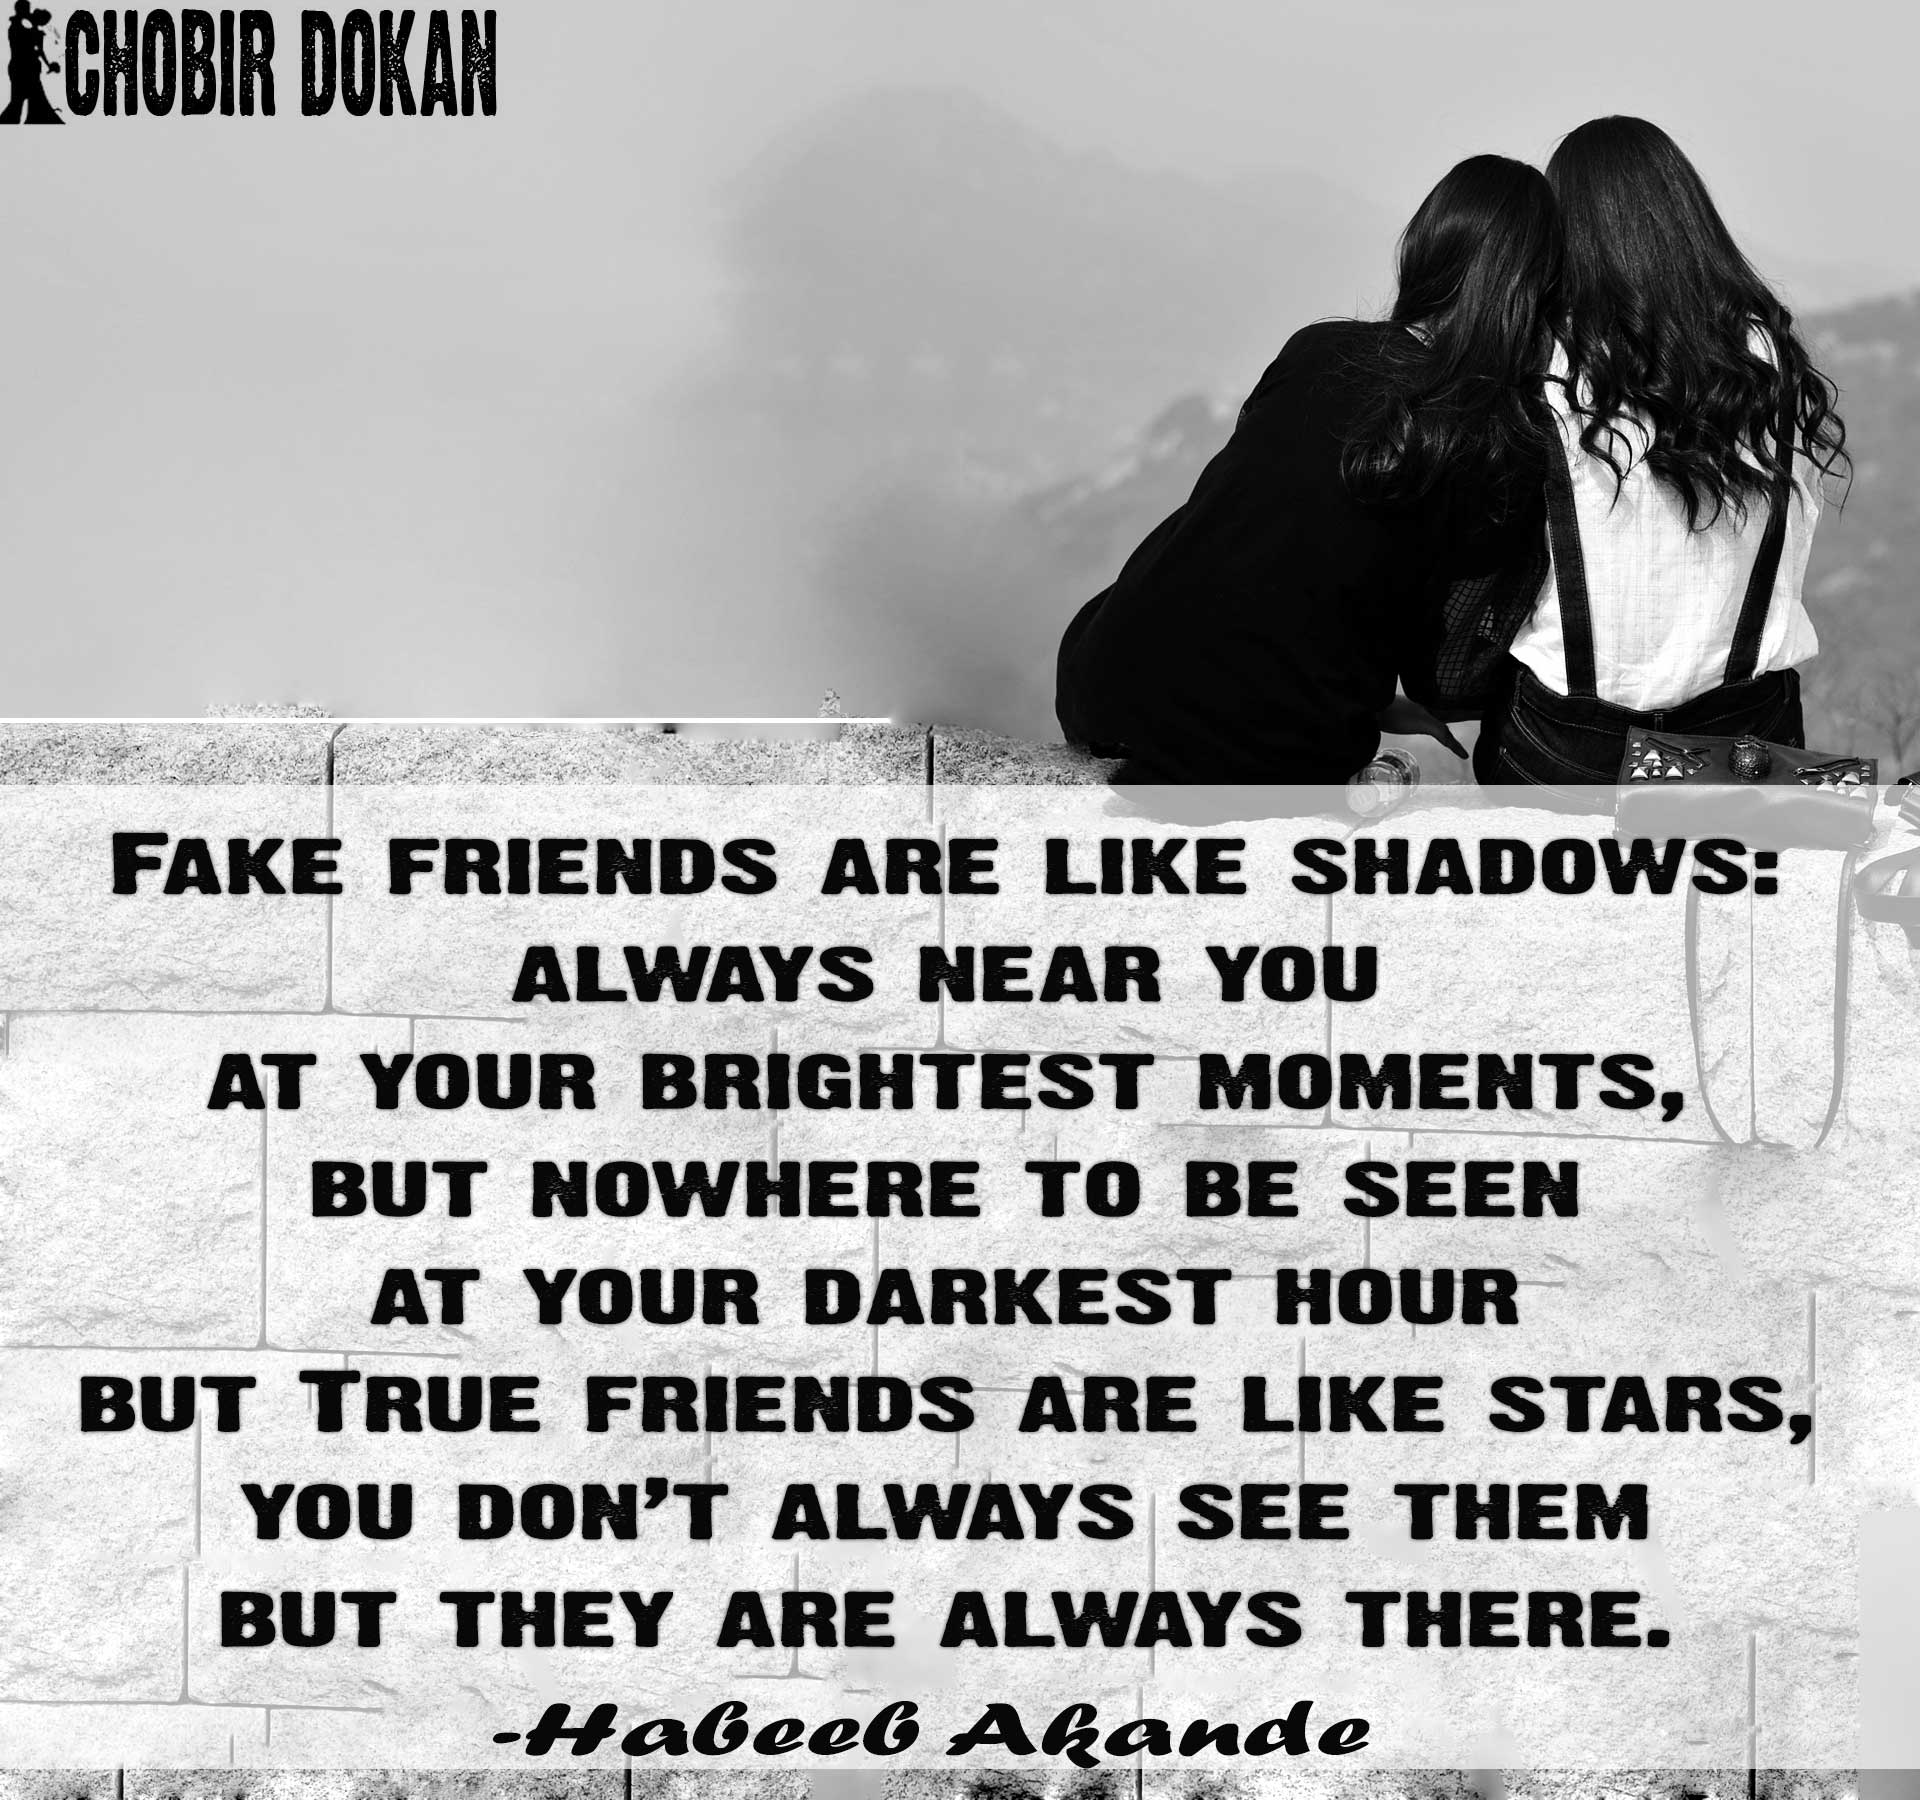 Friend Quotes 28 Fake Friends Quotes Images For Facebook Quotes About Bad Friends